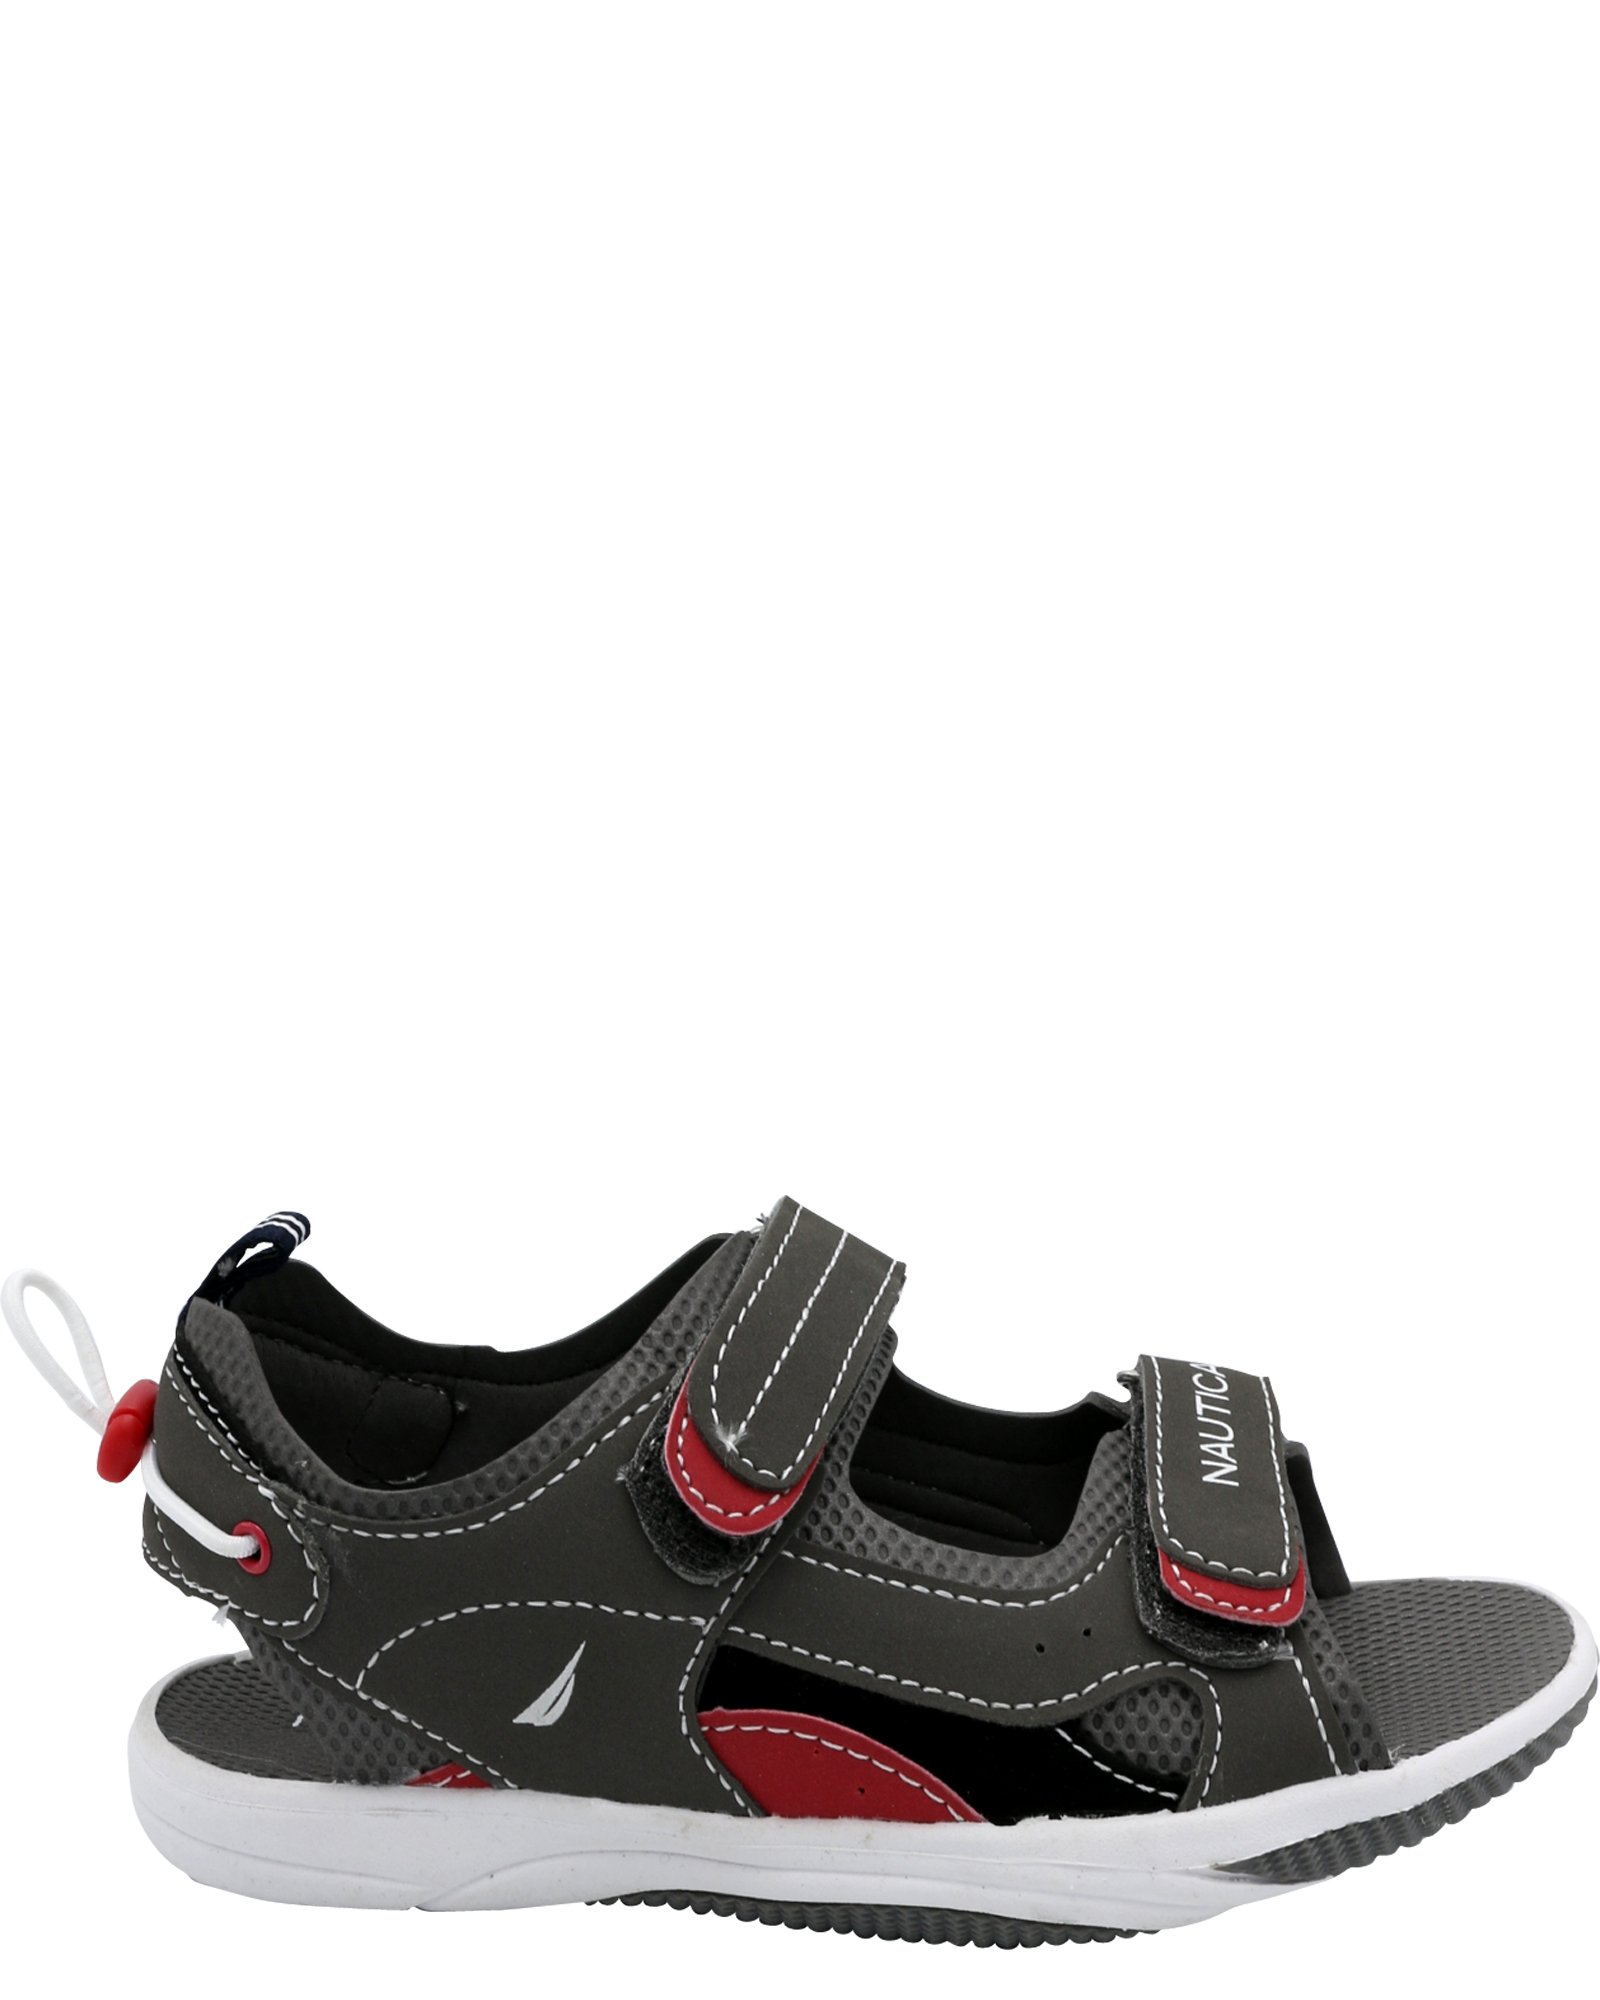 Nautica Kids Jamestown Sports Sandals, Open Toe Athletic Beach Water Shoes-Green/Red/Black-1